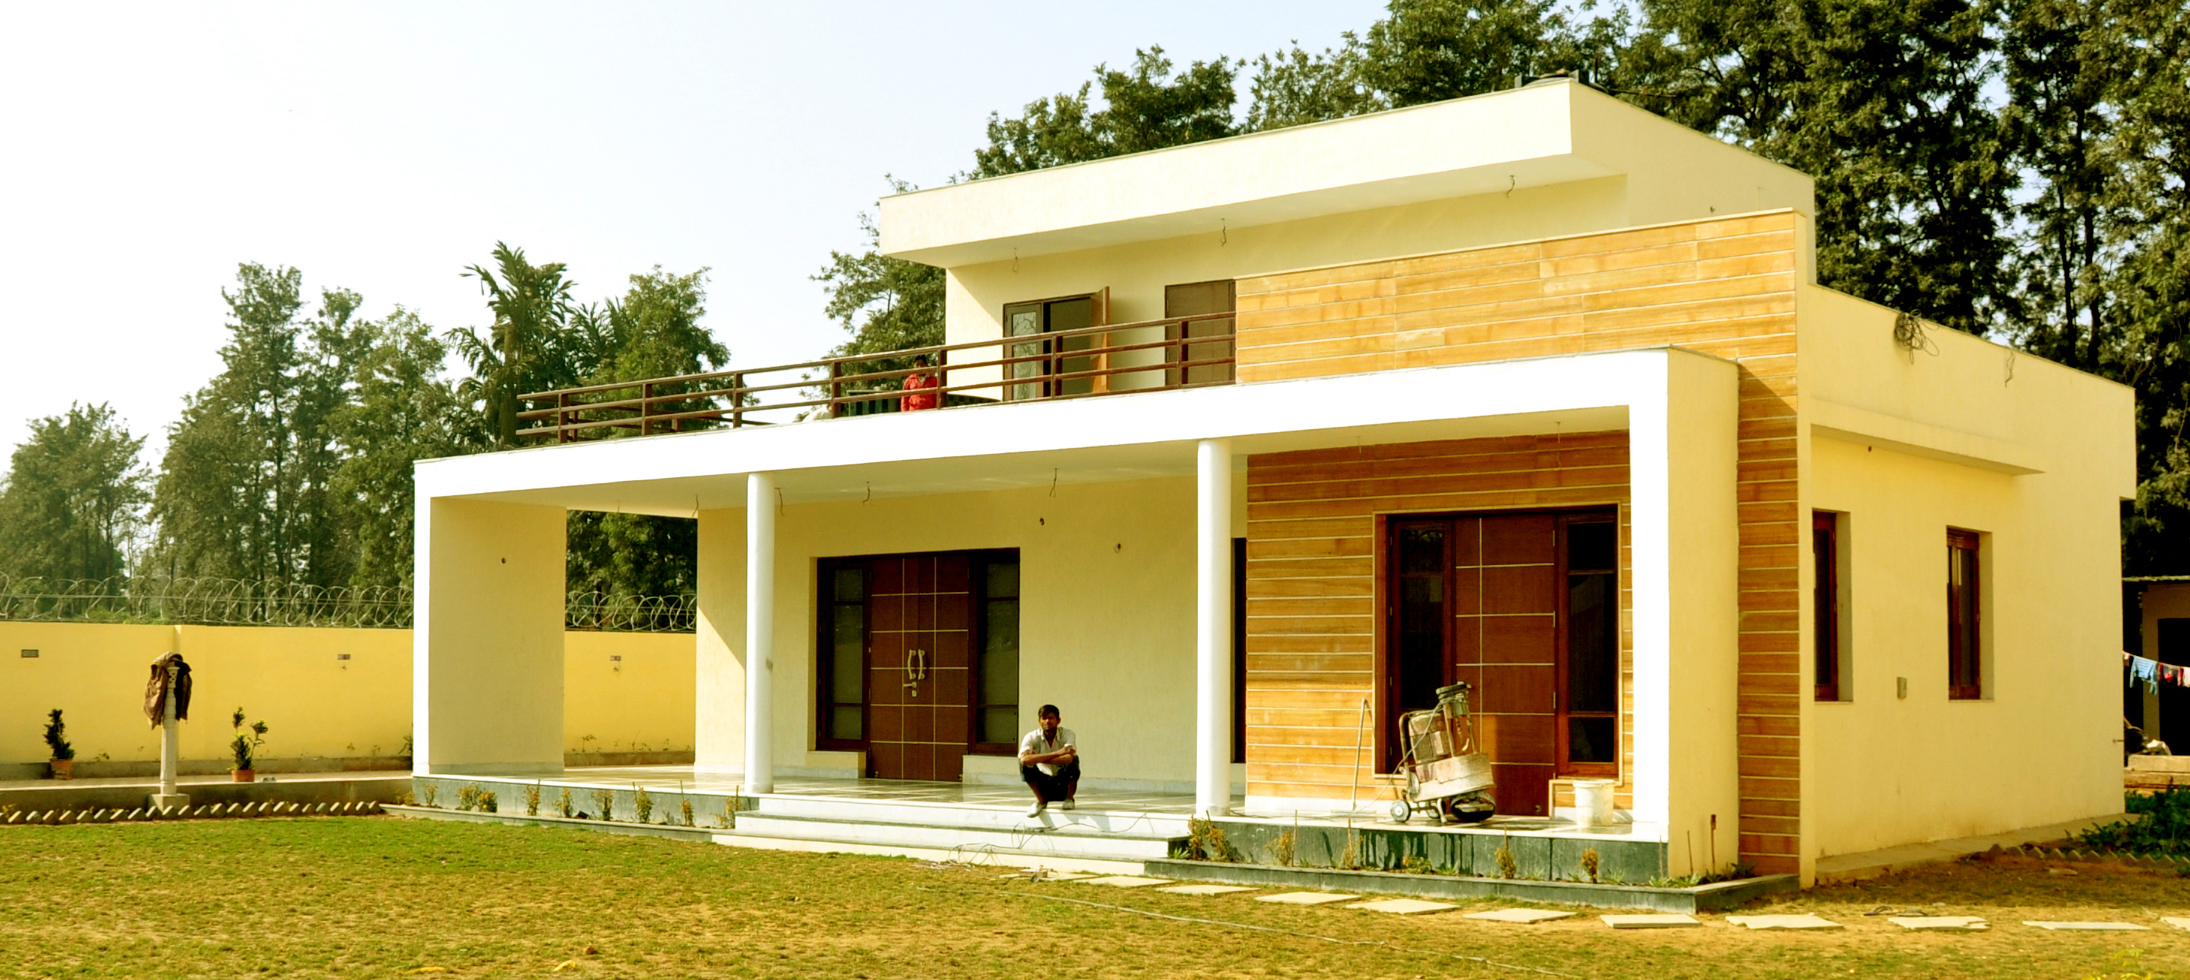 Chattarpur farm house south delhi architect magazine for Indian simple house design